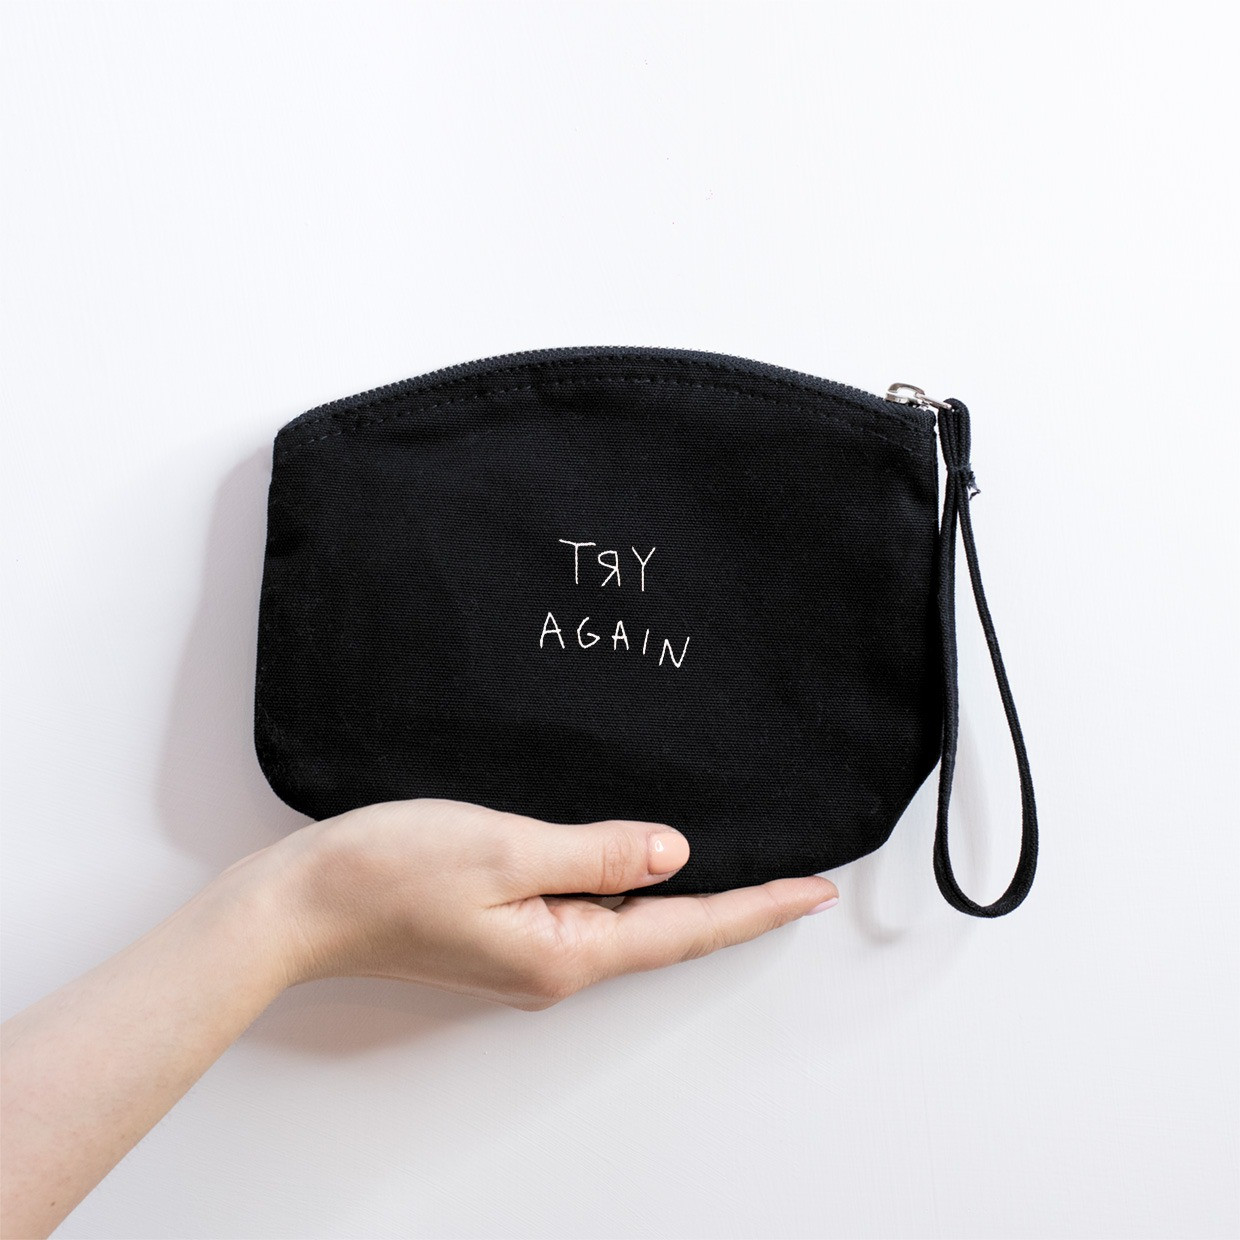 The ZIPPED POUCH M - Try Again